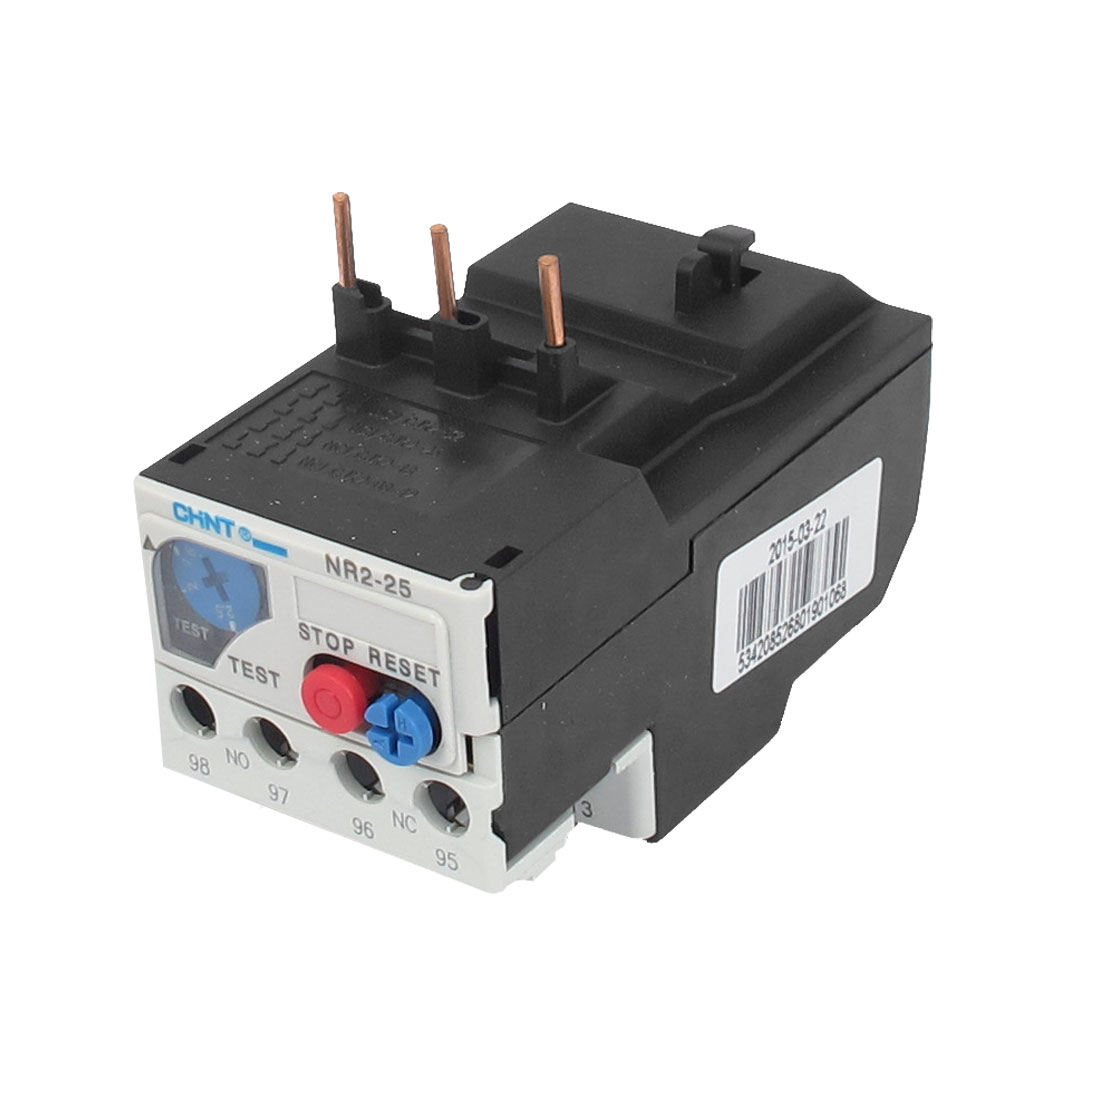 3 Pole AC 1.6A to 2.5A 690V Electric Thermal Overload Relay NR2-25